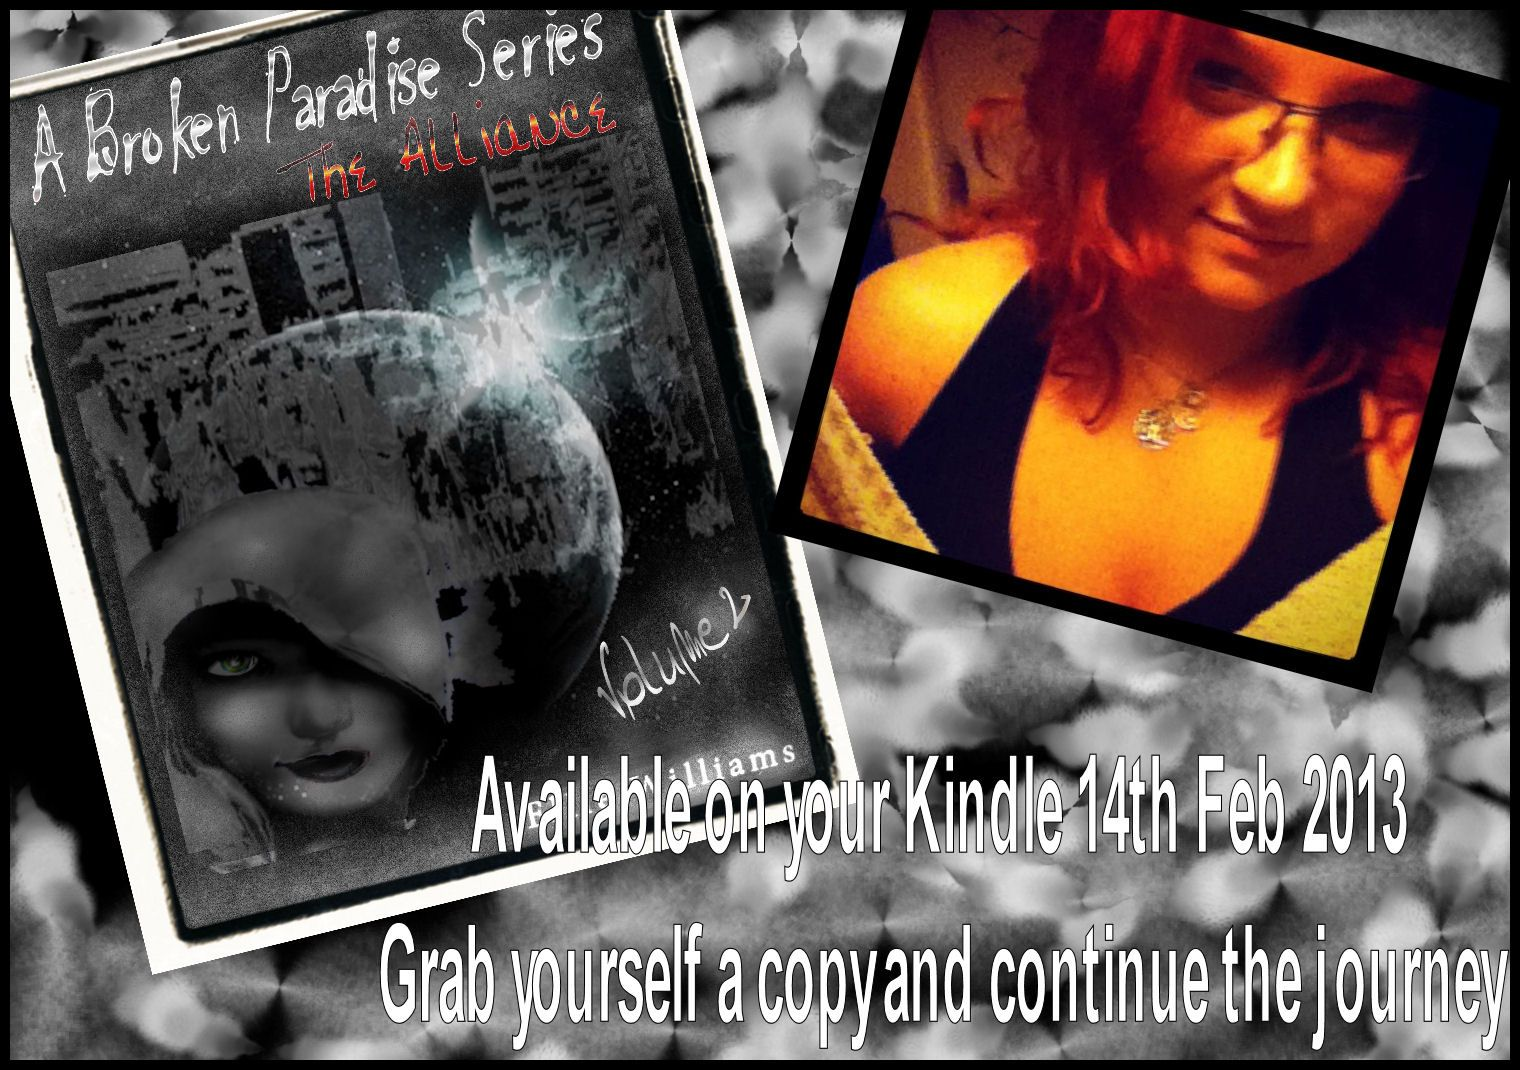 The Alliance is the second installment to the A Broken Paradise Series.